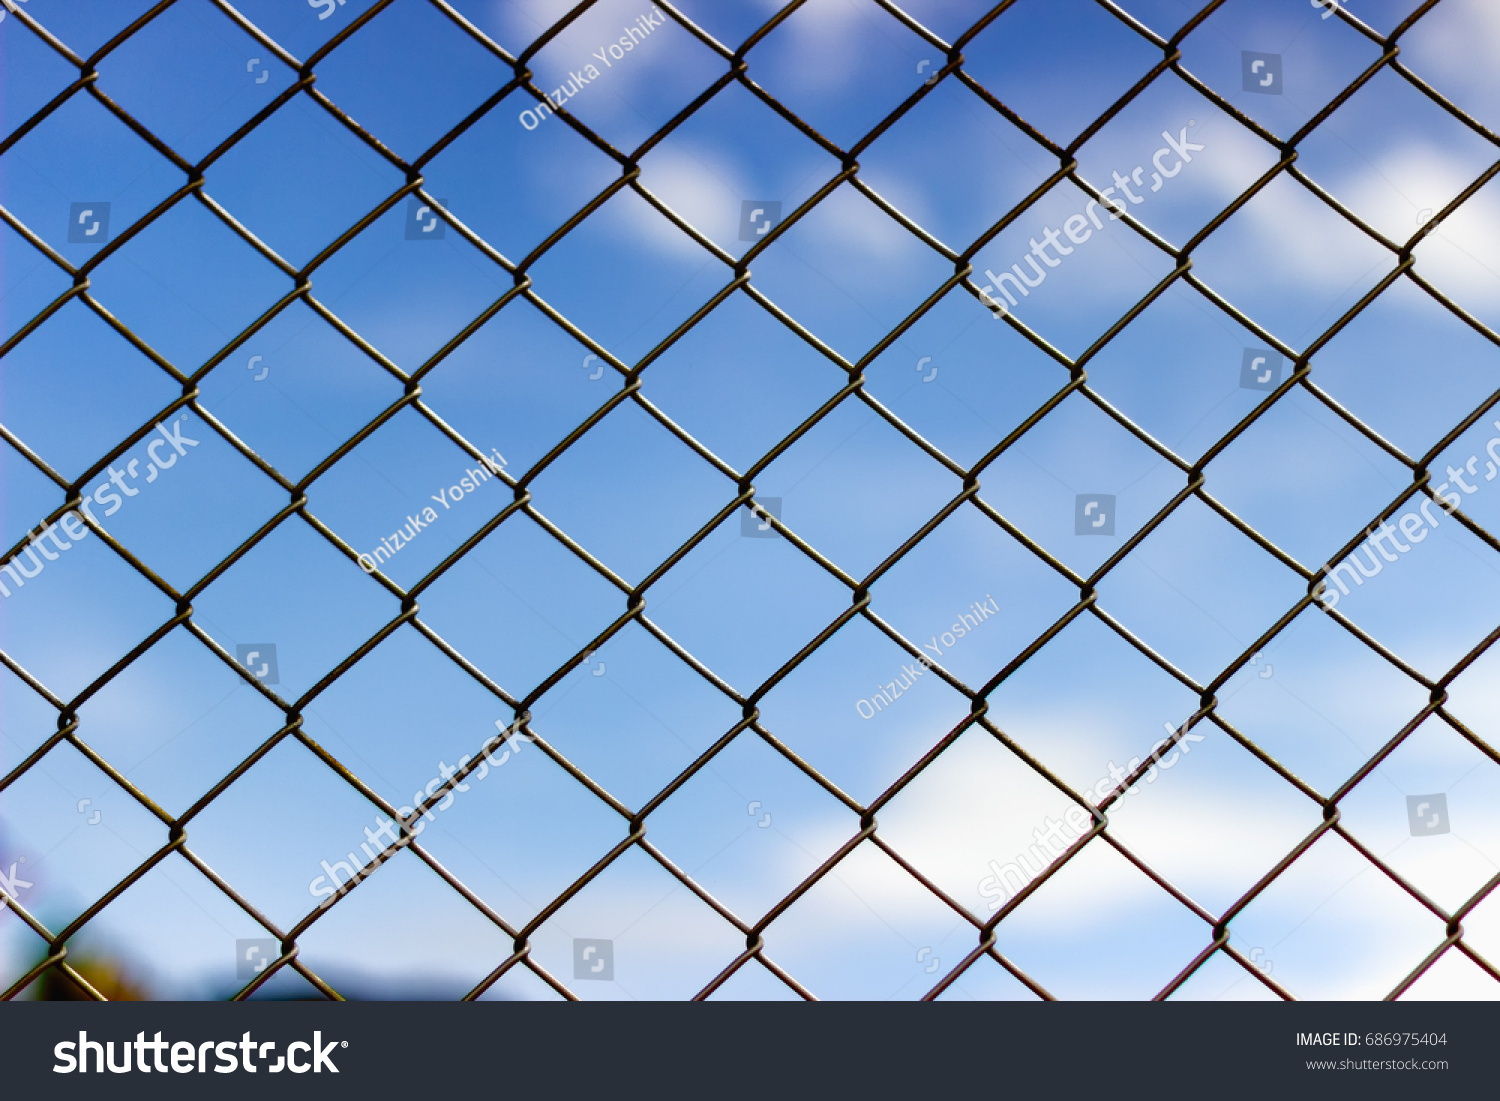 Close Metal Wire Mesh Fence Stock Photo 686975404 - Shutterstock